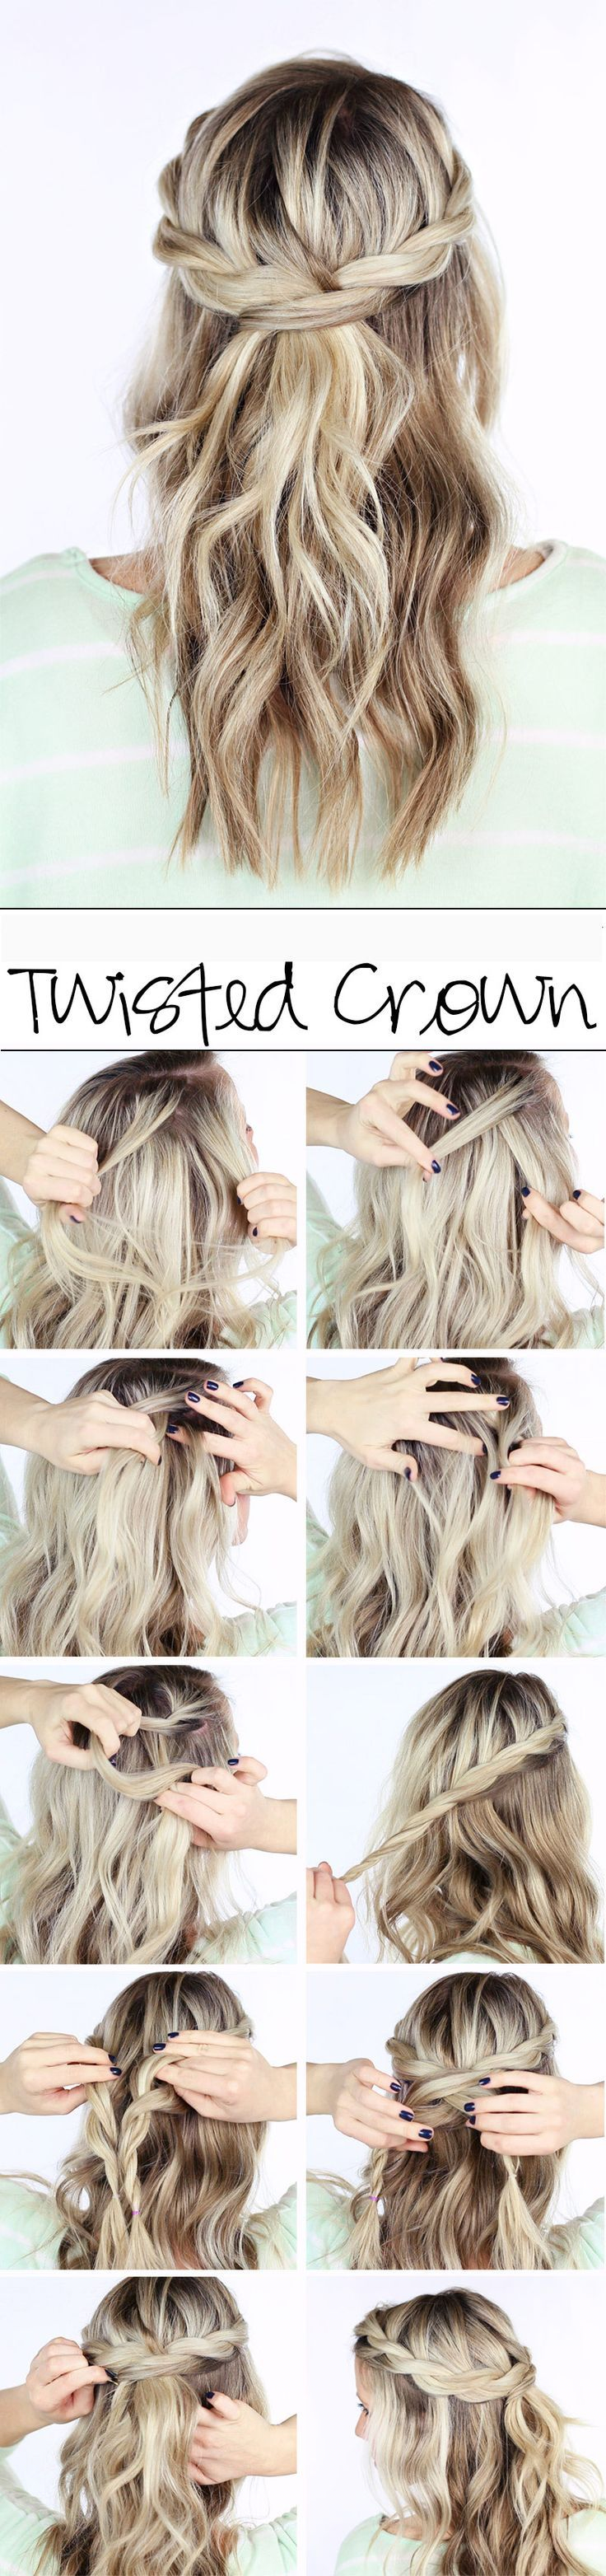 Best DIY Wedding Hairstyles with Tutorials | | Beauty | | Pinterest ...